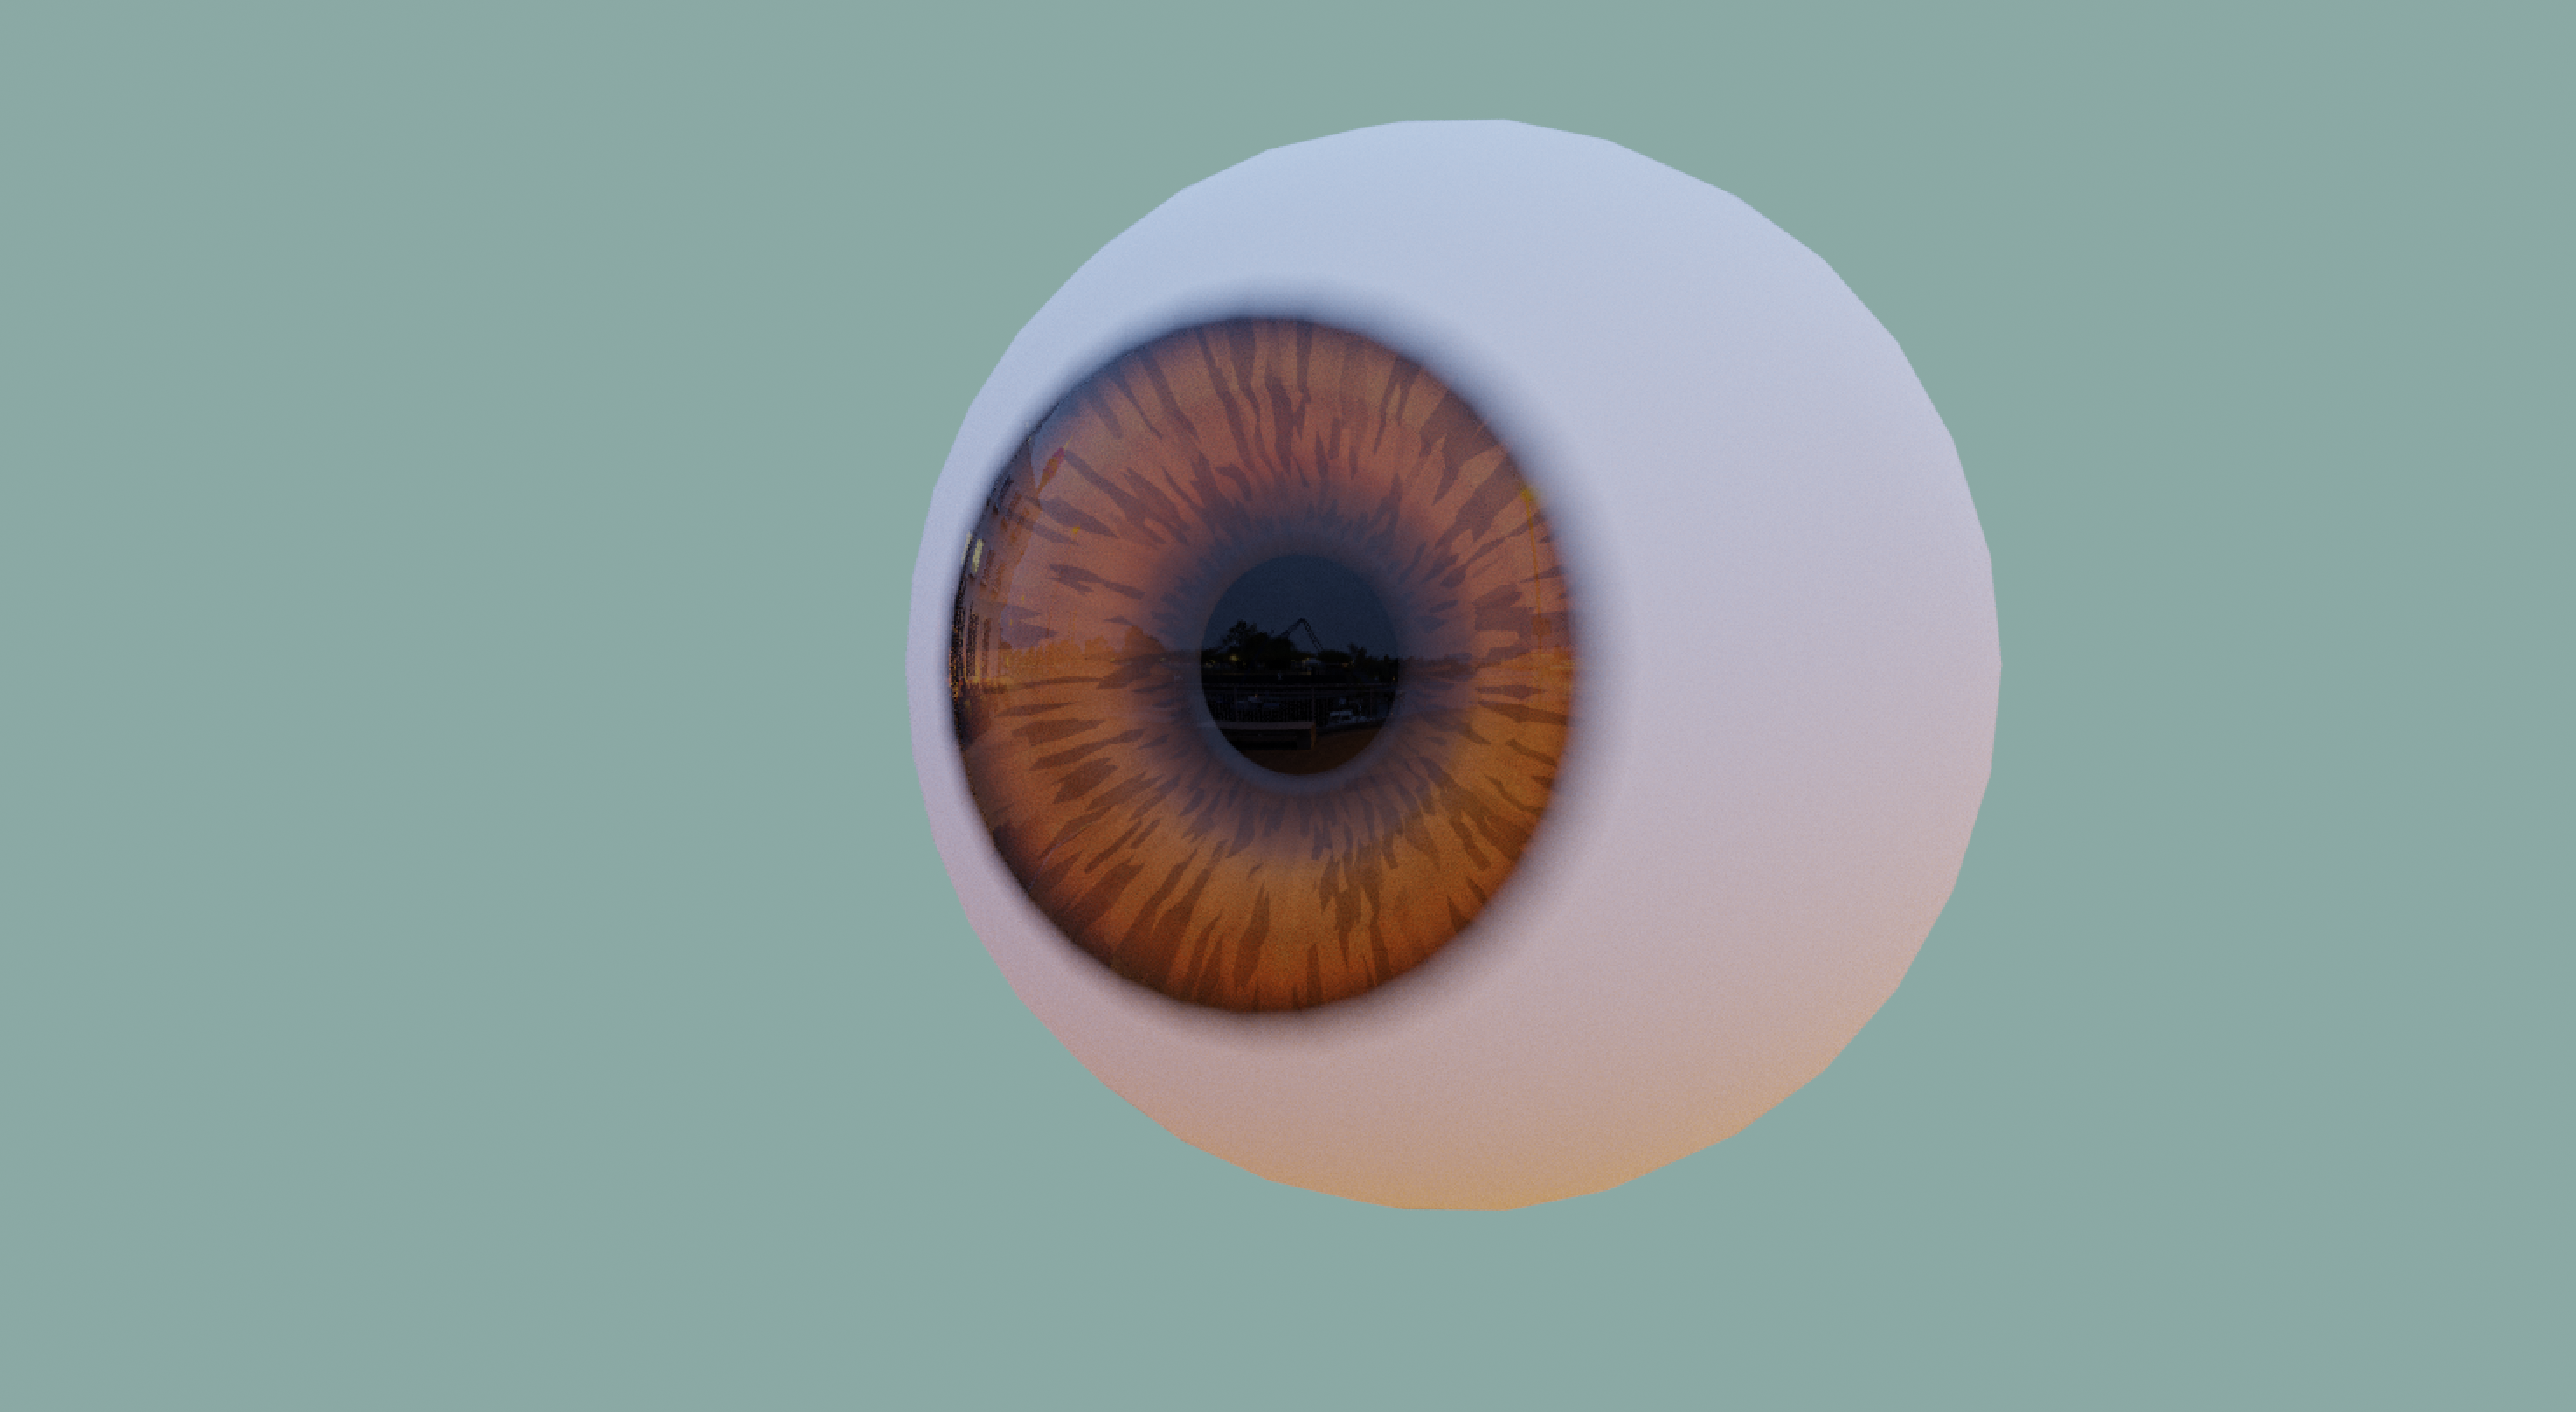 Cartoon // Real Eyes - Model and Materials preview image 3